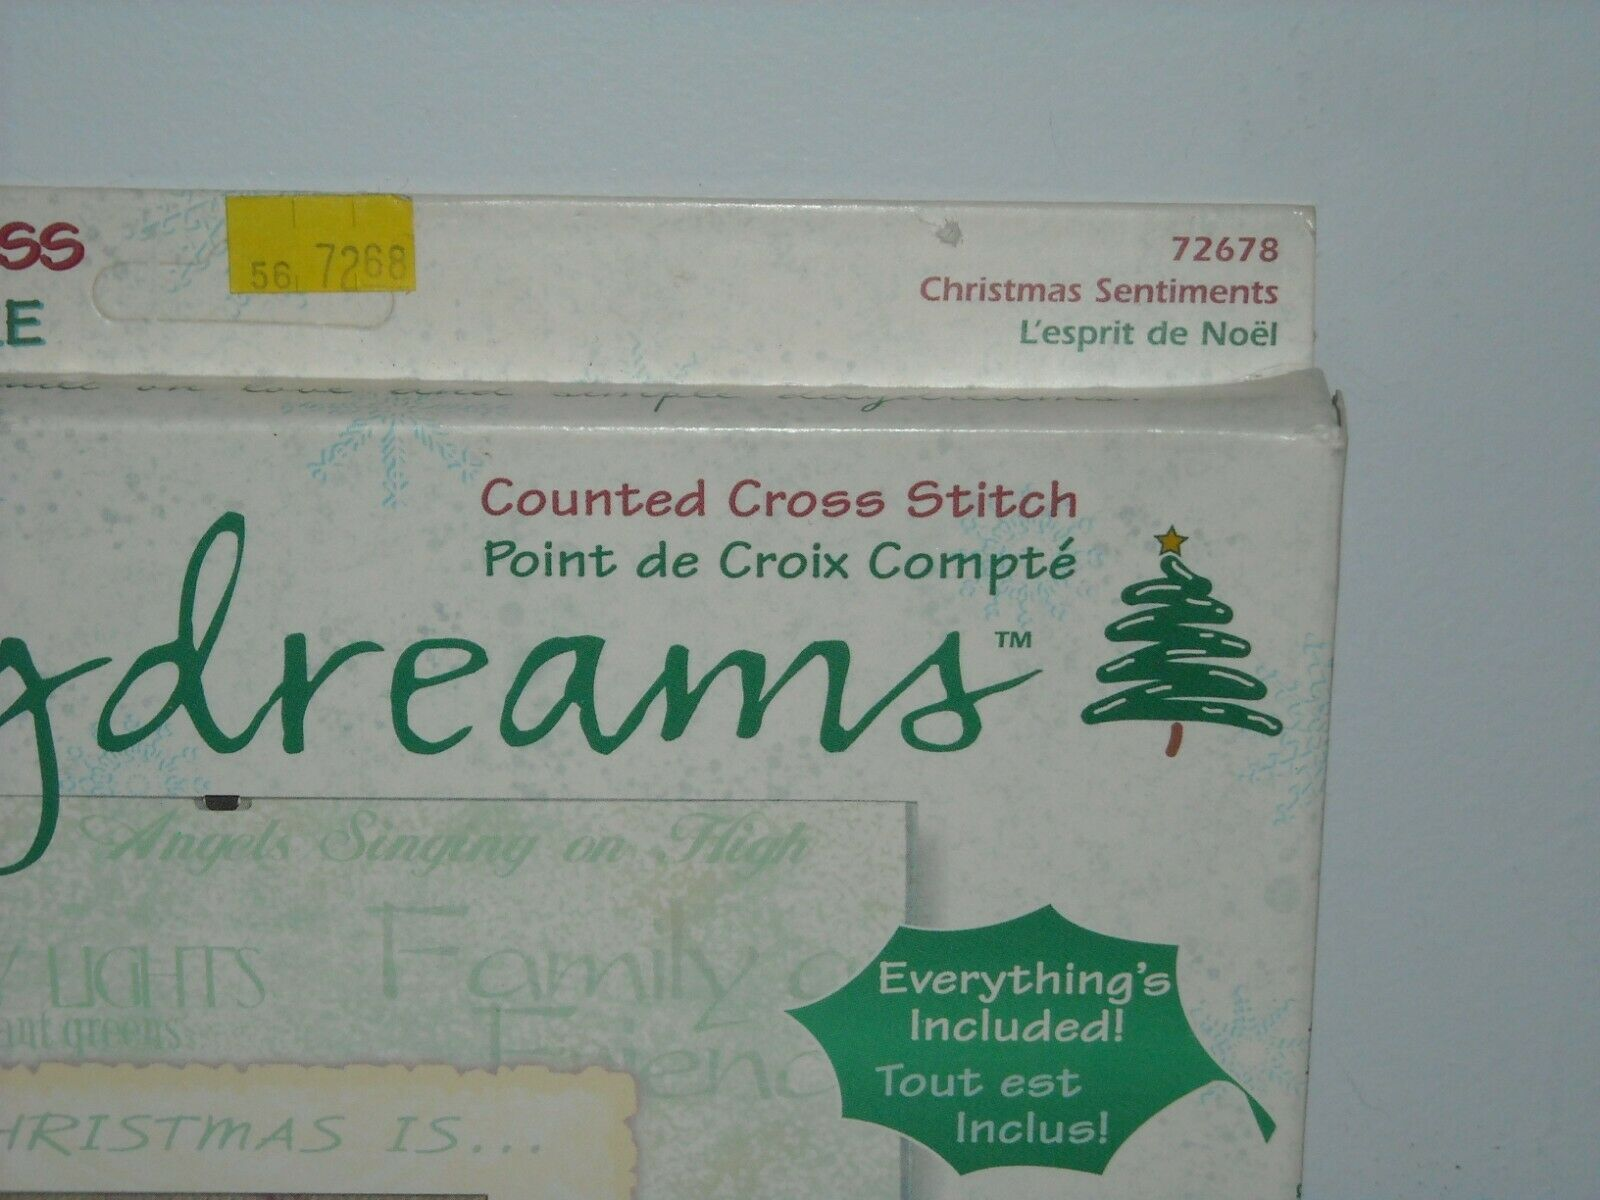 Edreams Compte Dimensions Daydreams Counted Cross Stitch Kit Christmas Sentiments